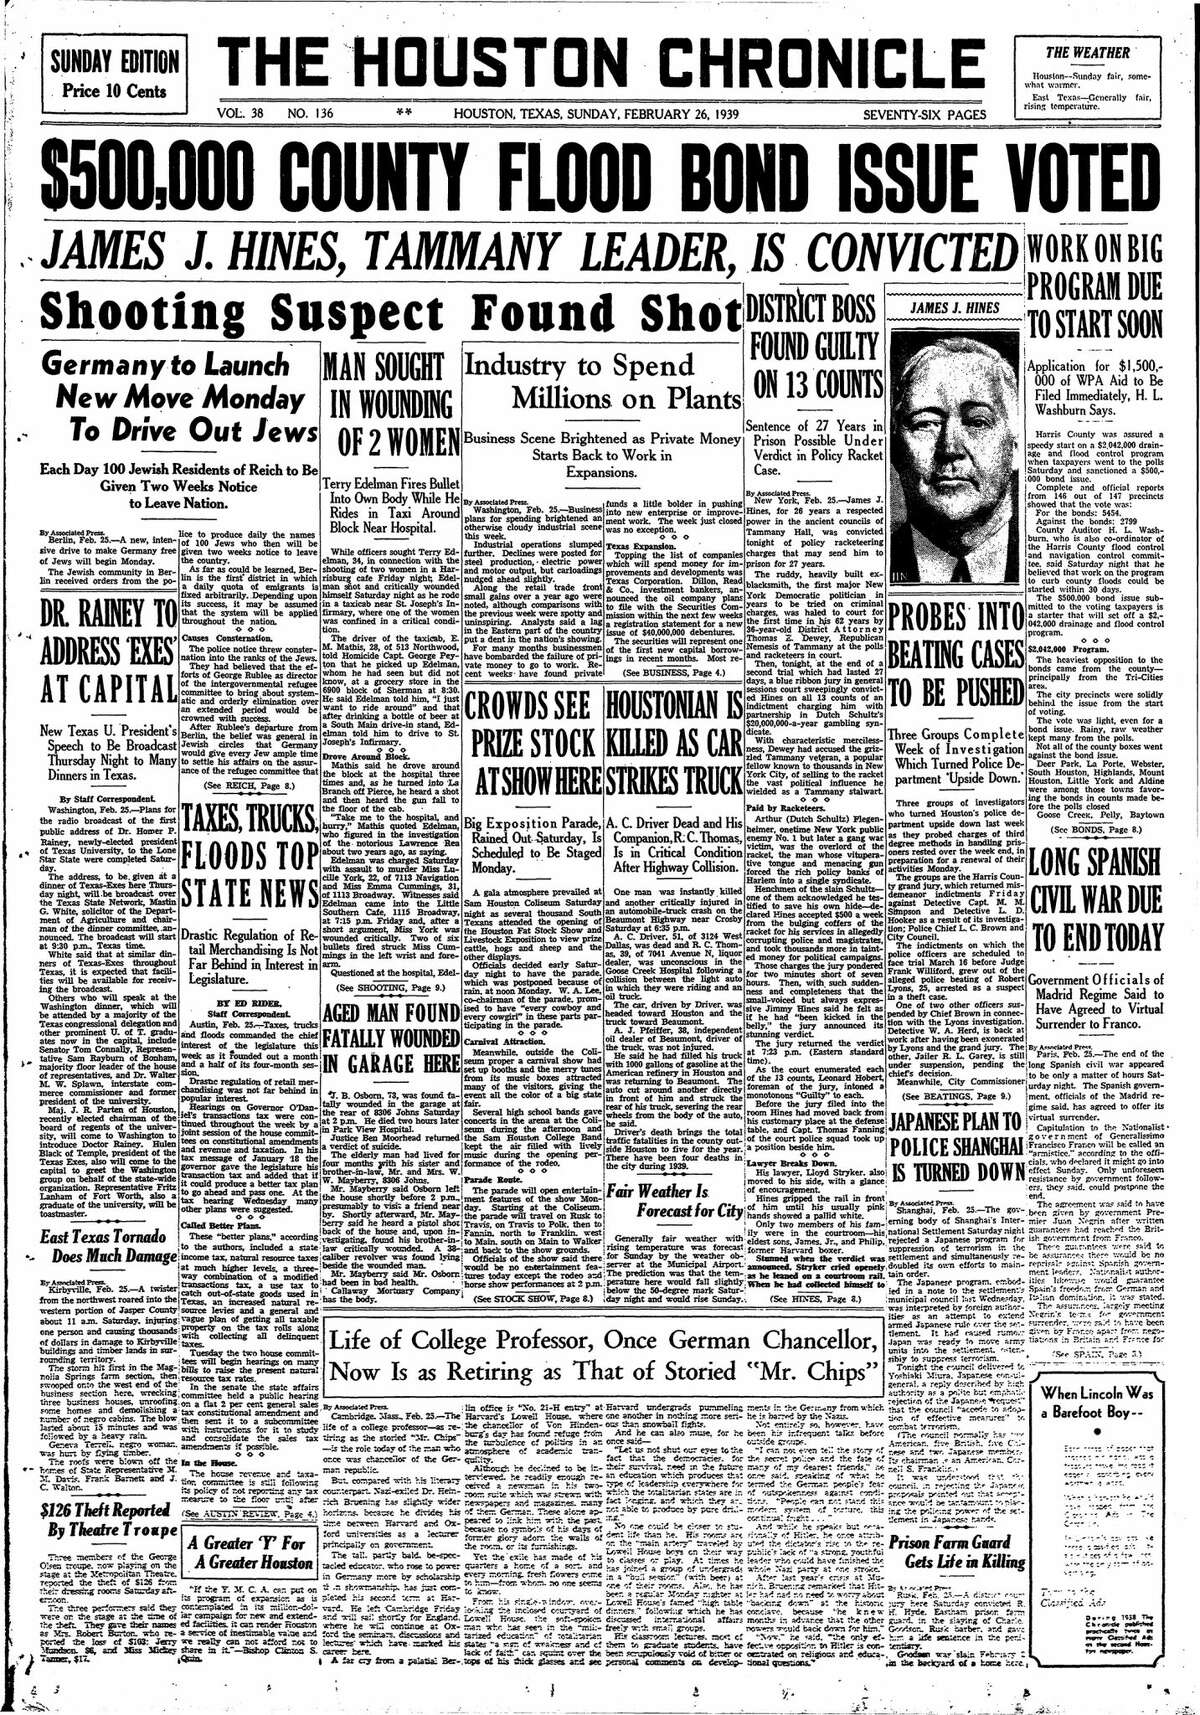 Houston Chronicle front page from Feb. 26, 1939.